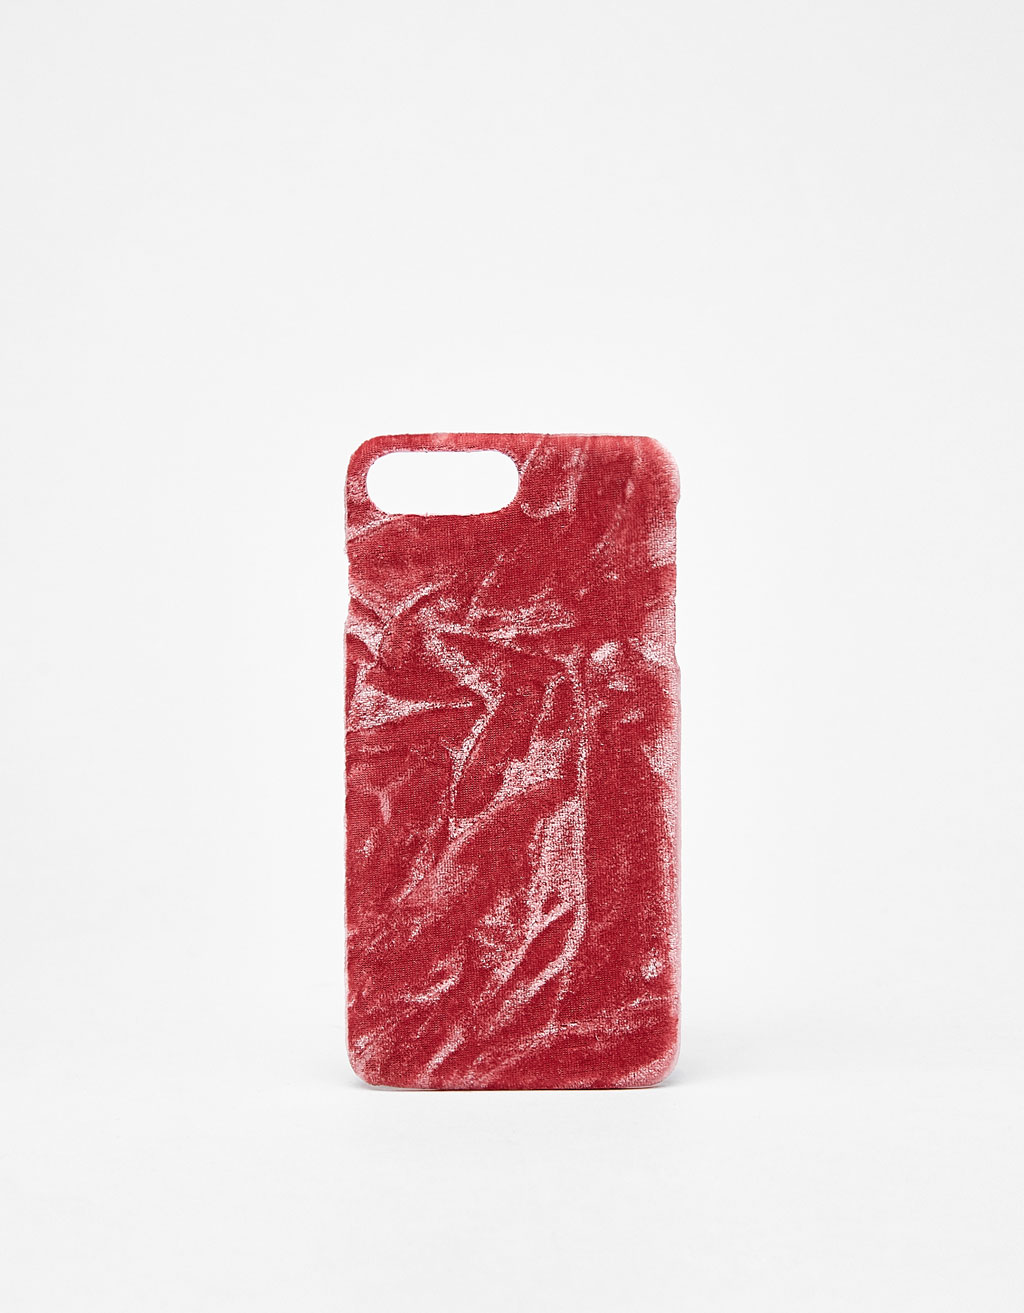 Velvet iPhone 6 Plus/7 Plus case